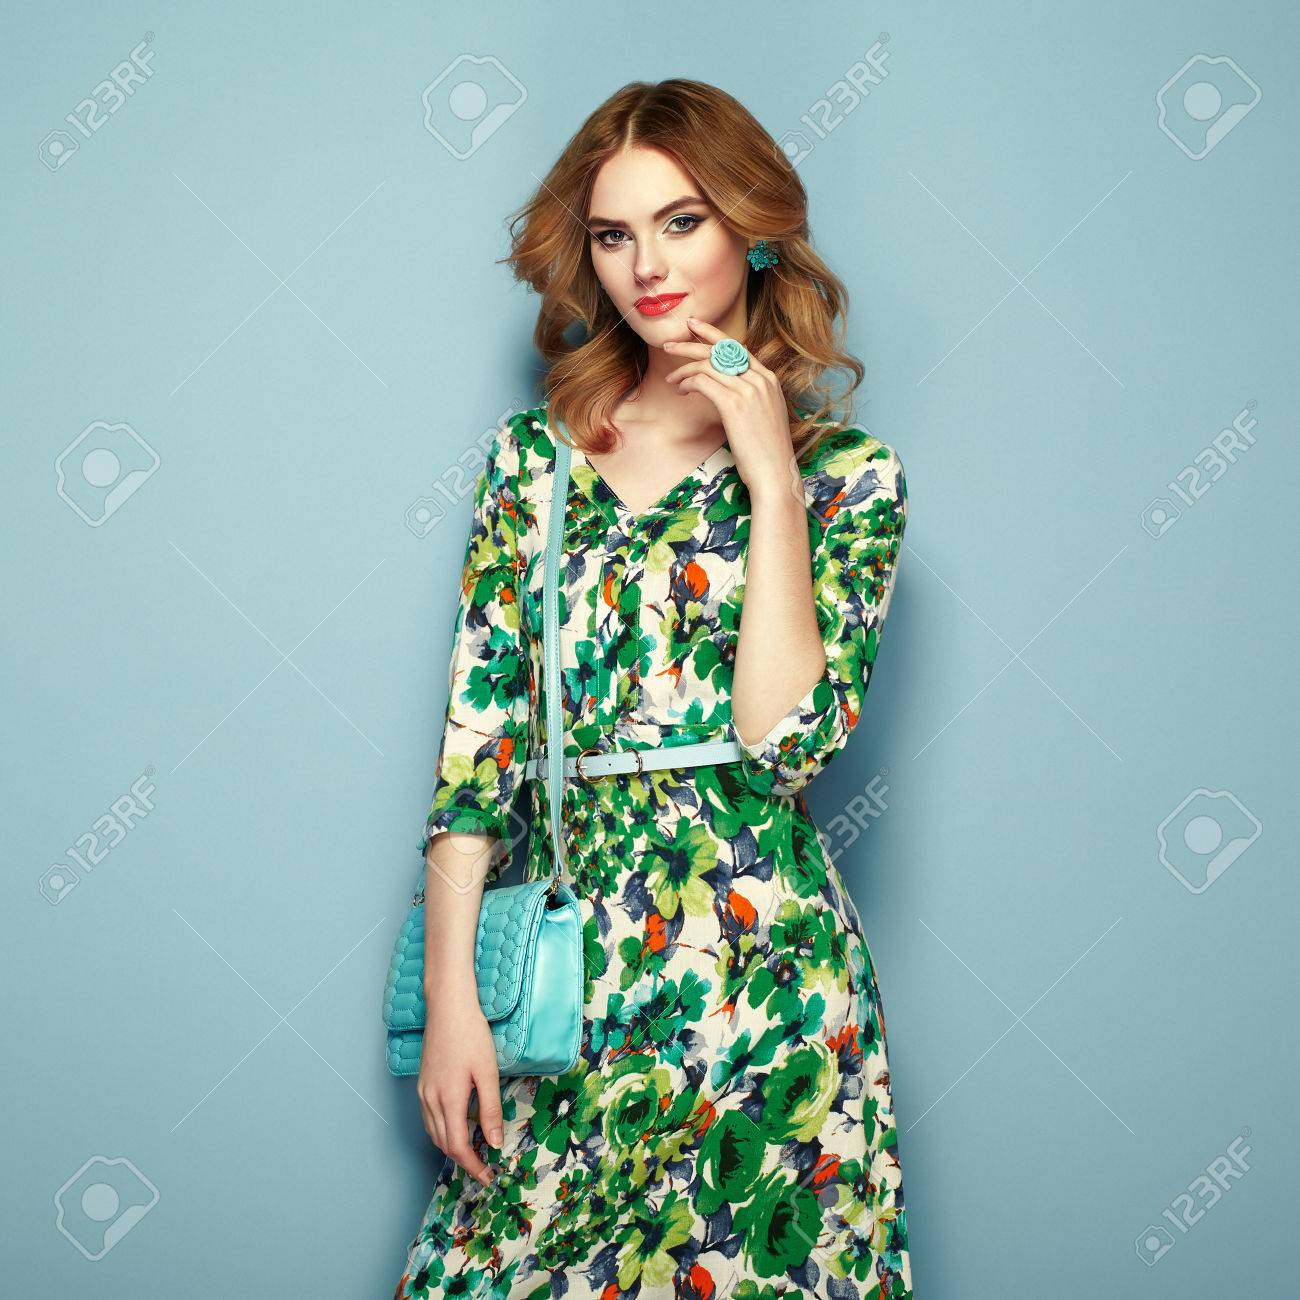 Blonde young woman in floral spring summer dress. Girl posing on a pink background. Summer floral outfit. Stylish wavy hairstyle. Fashion photo. Glamour lady with handbag - 77028798